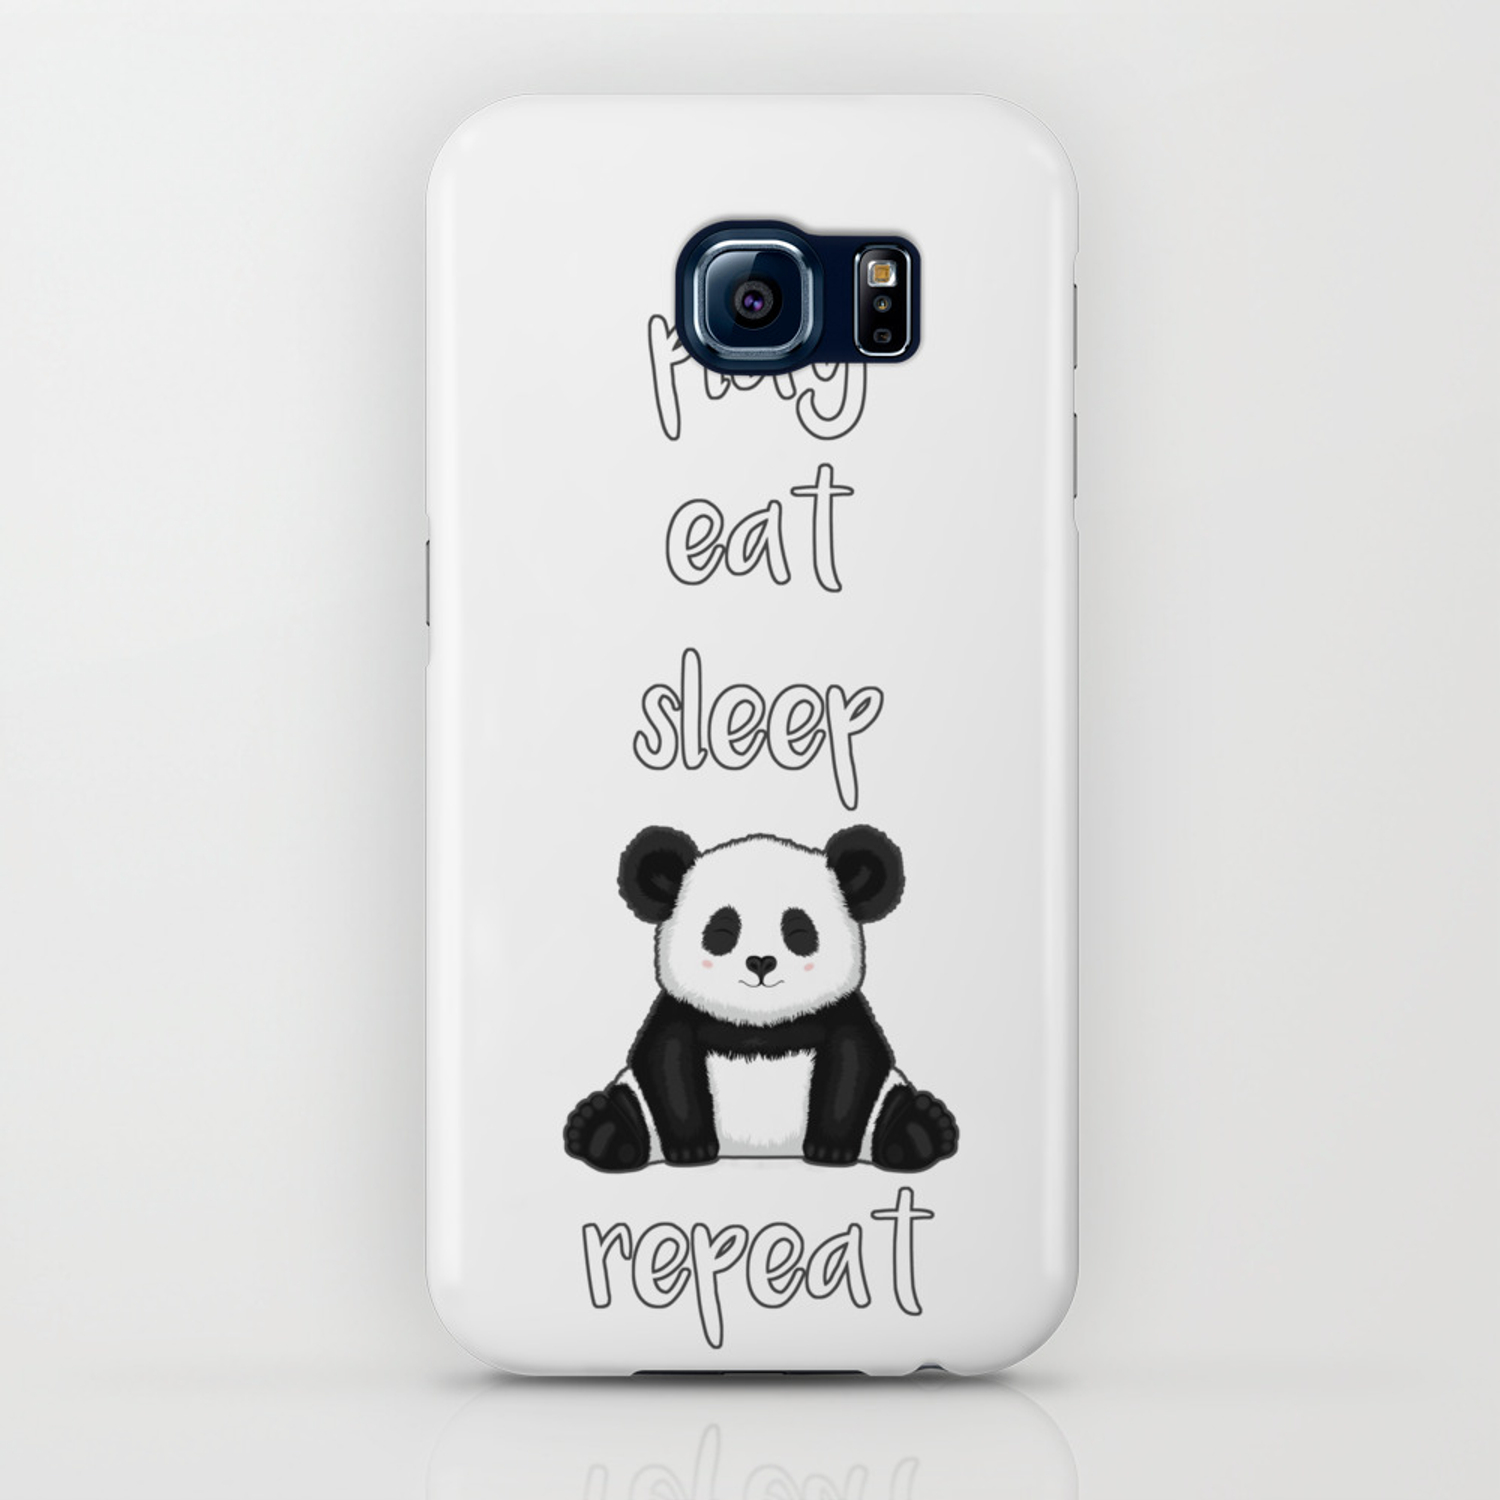 online retailer 0dabc 0ec2d Fluffy Panda iPhone Case